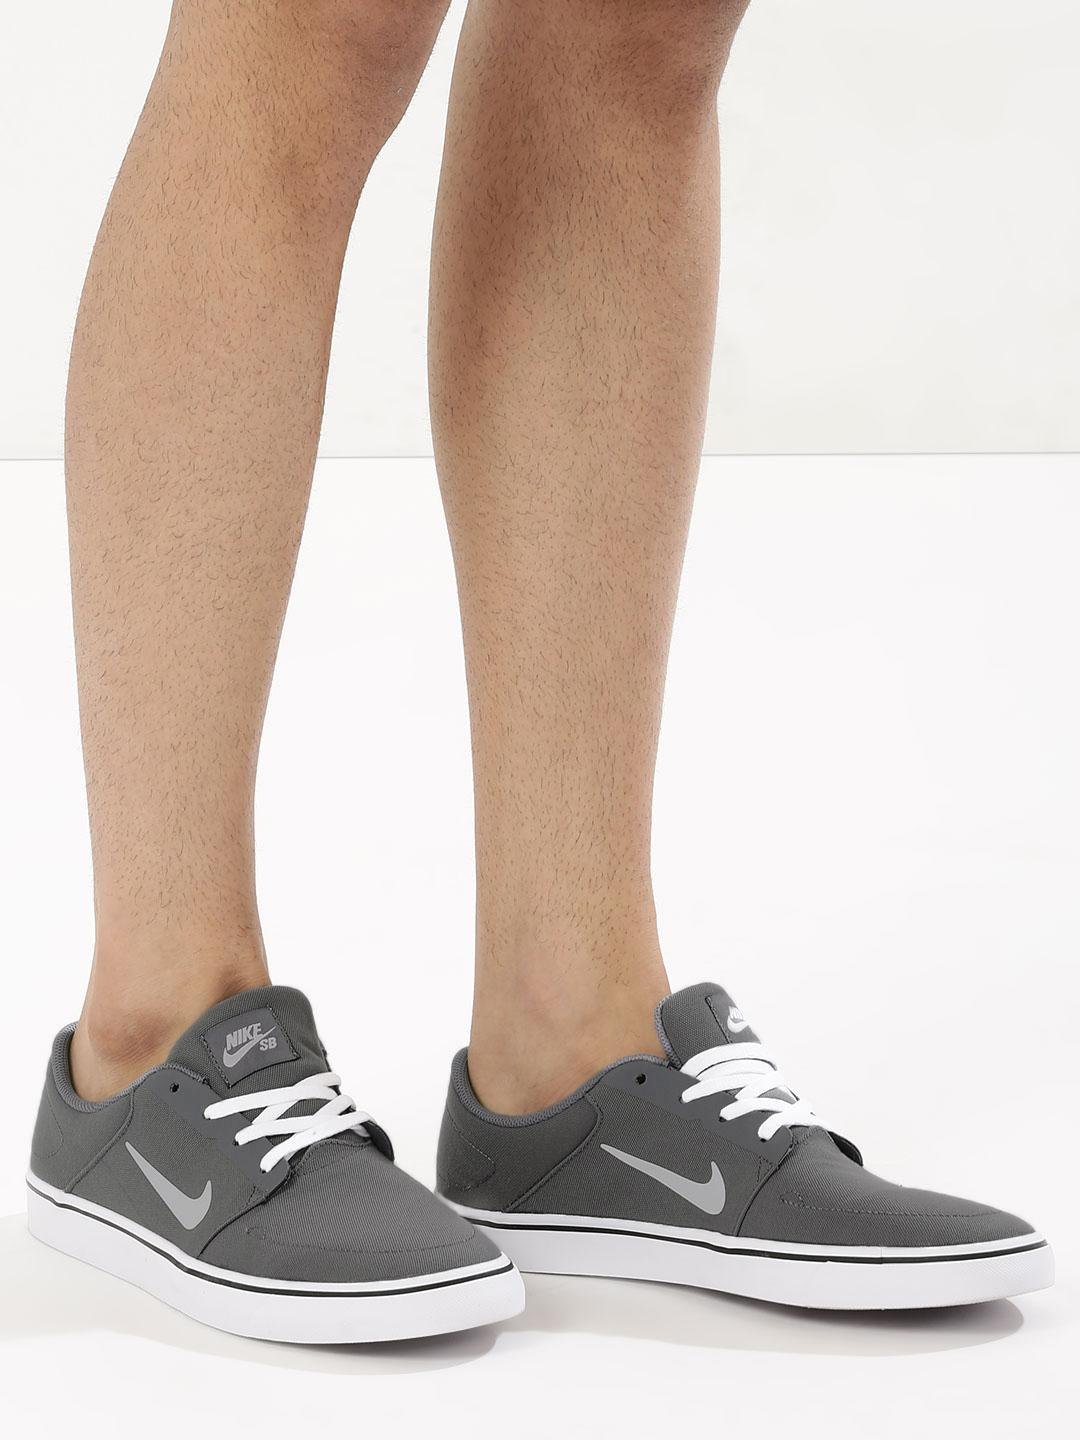 Nike GREY/WHIT/BLACK Sb Portmore Canvas Skateboarding Shoes 1